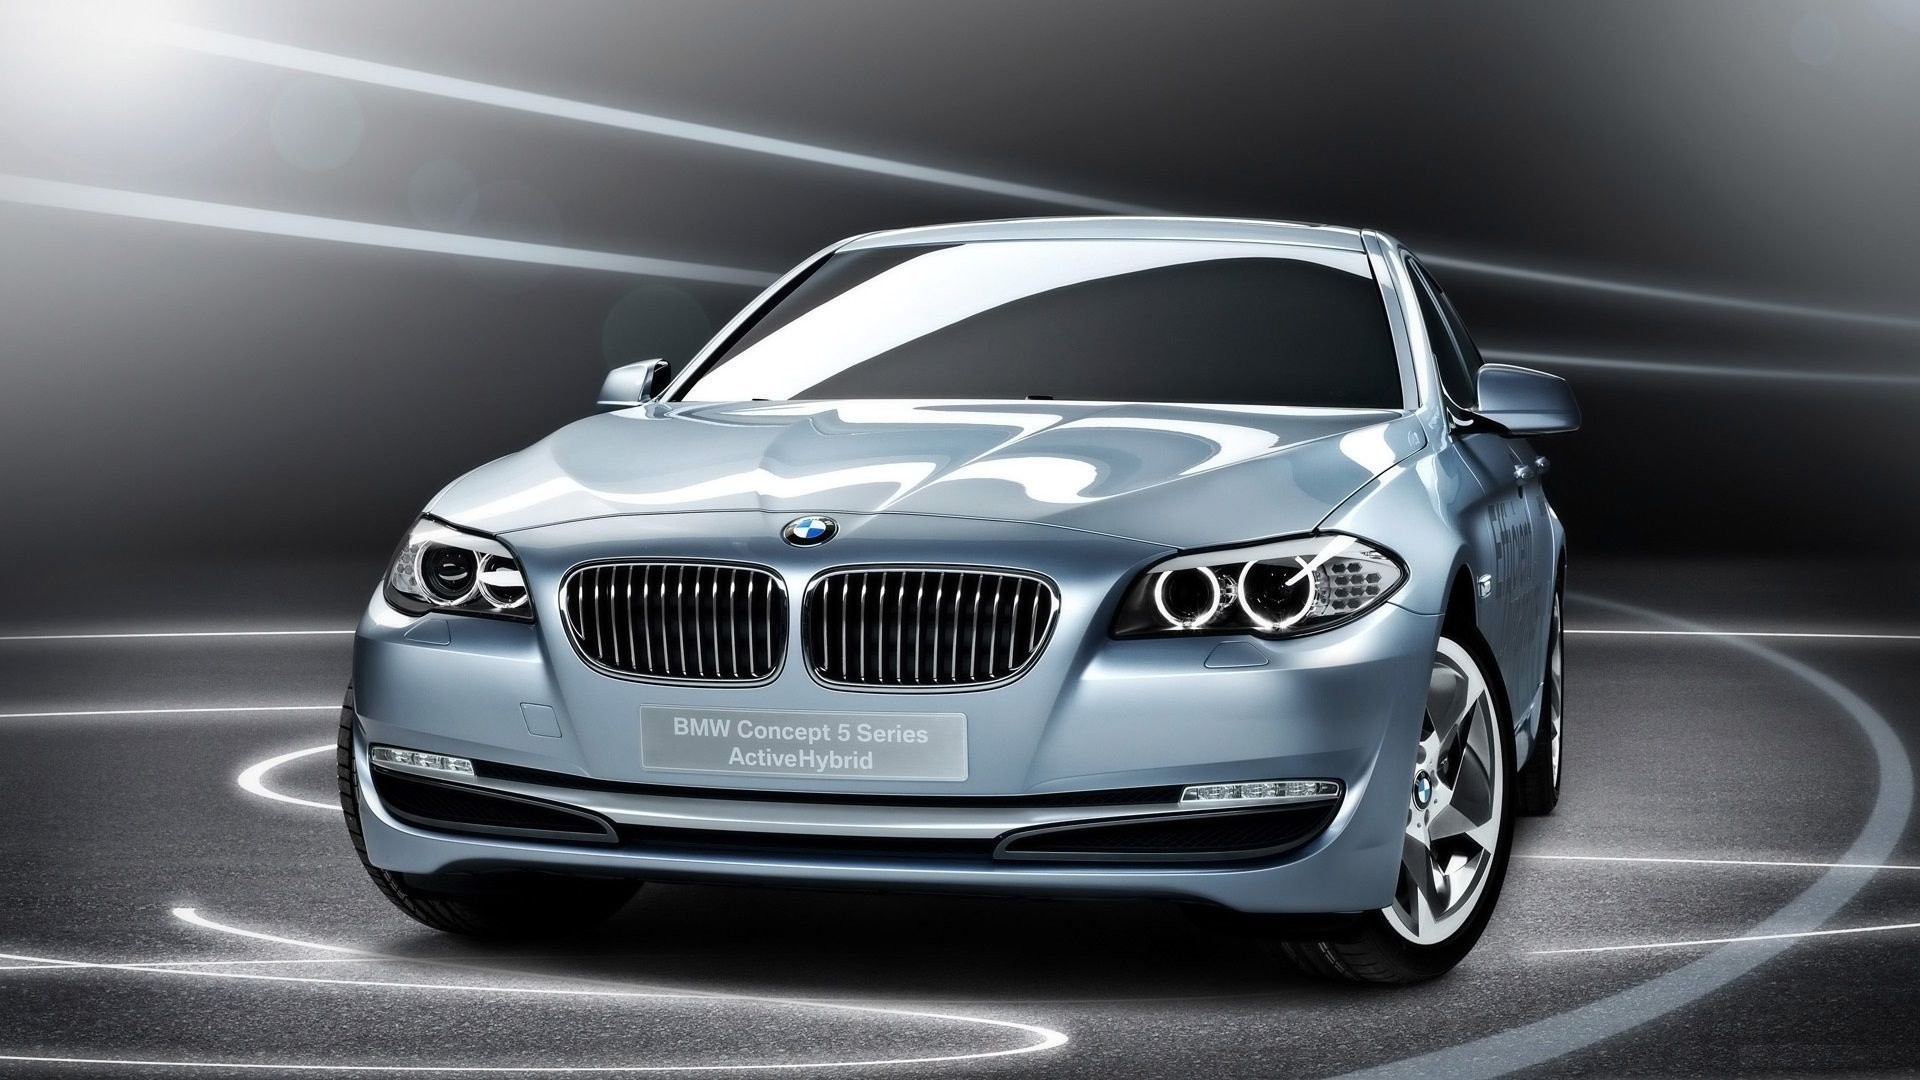 Latest Bmw Car Hd Wallpapers 1080P 32 Find Hd Wallpapers For Free Free Download